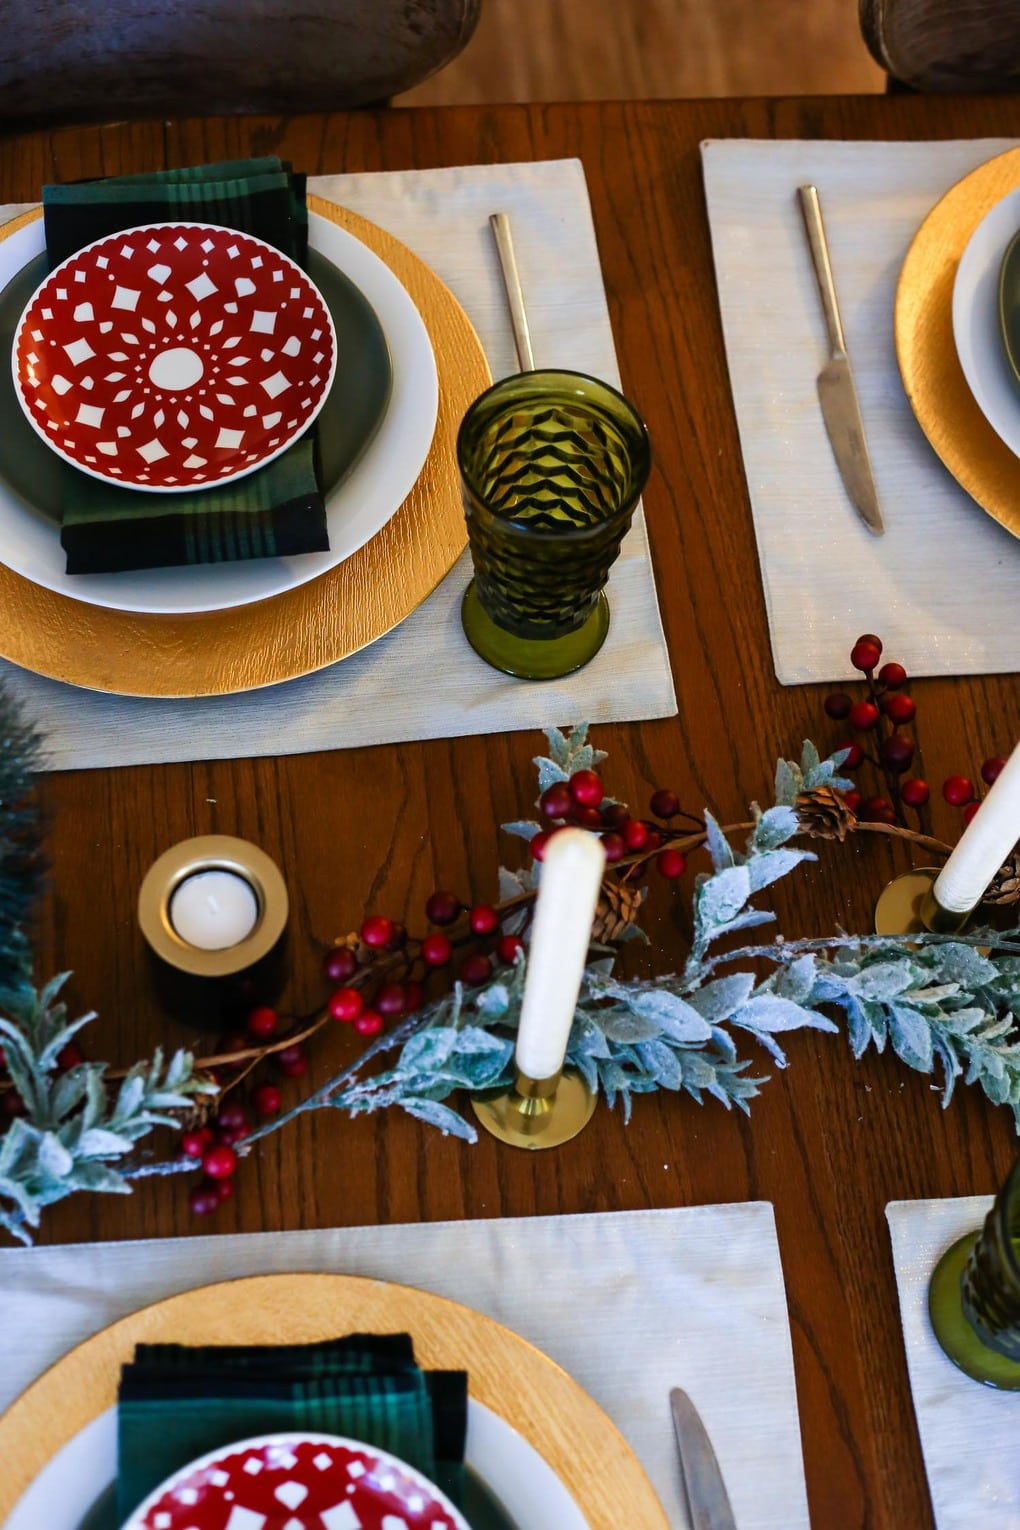 A traditional table setting for Christmas